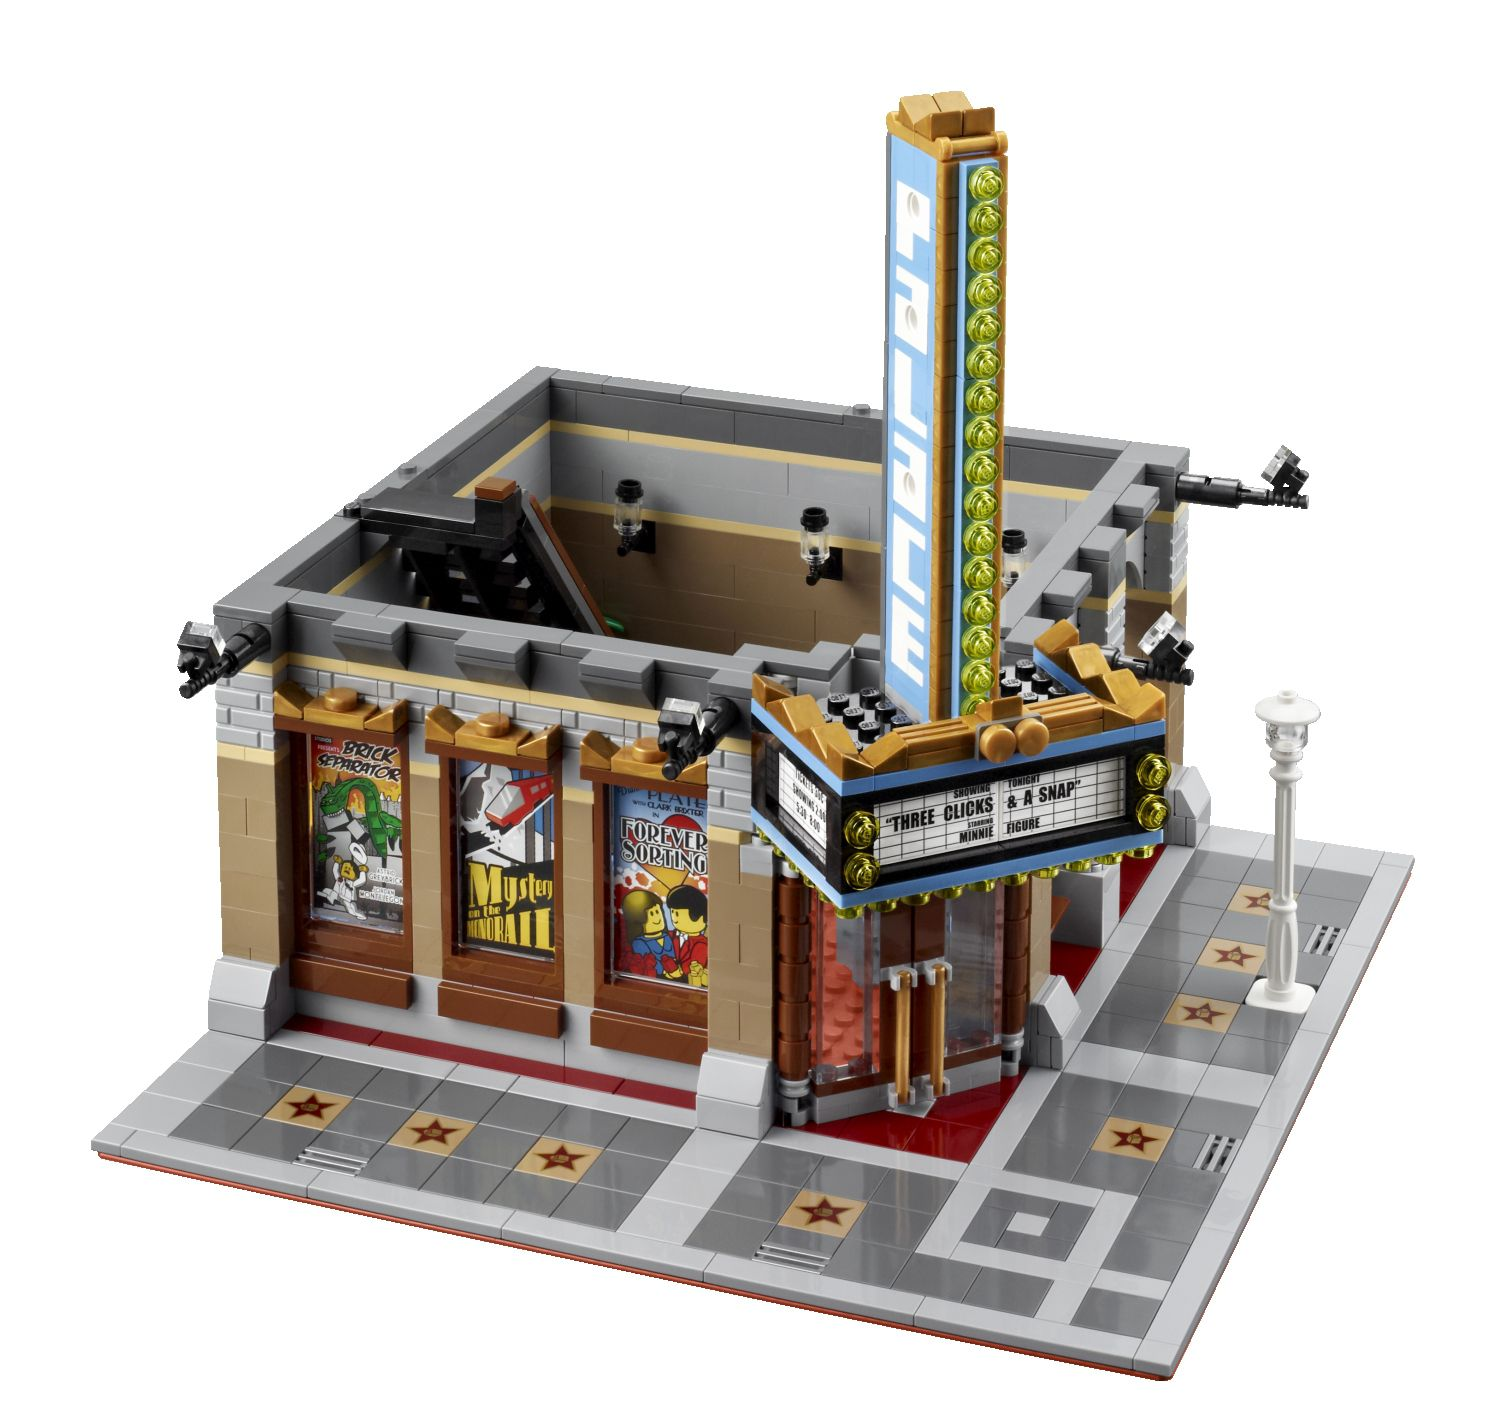 LEGO Advanced Models 10232 Palace Cinema 10232_front_callout_02_floor1.jpg